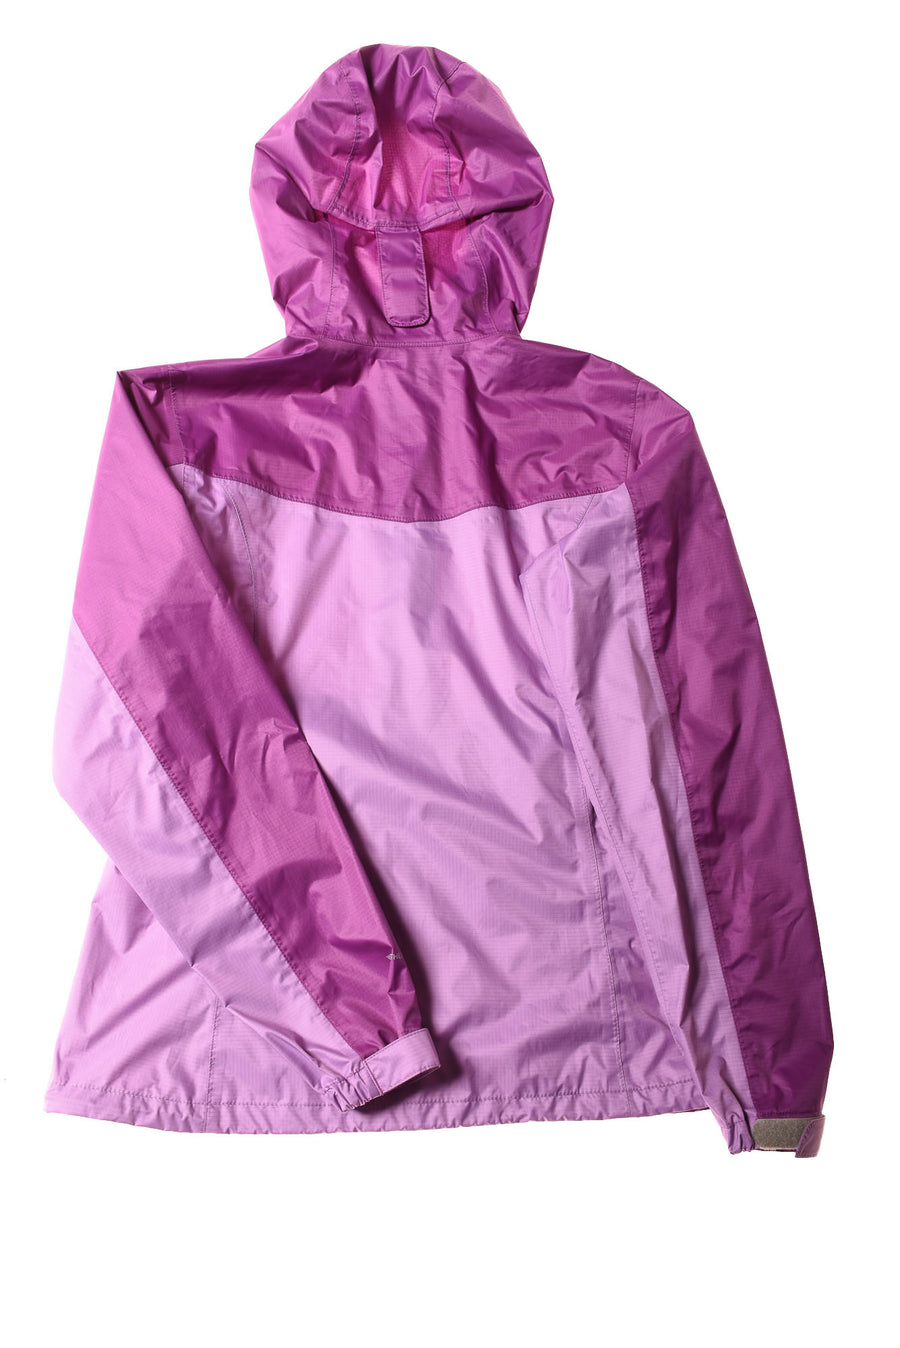 USED Eddie Bauer Girl's Jacket X-Small Purple